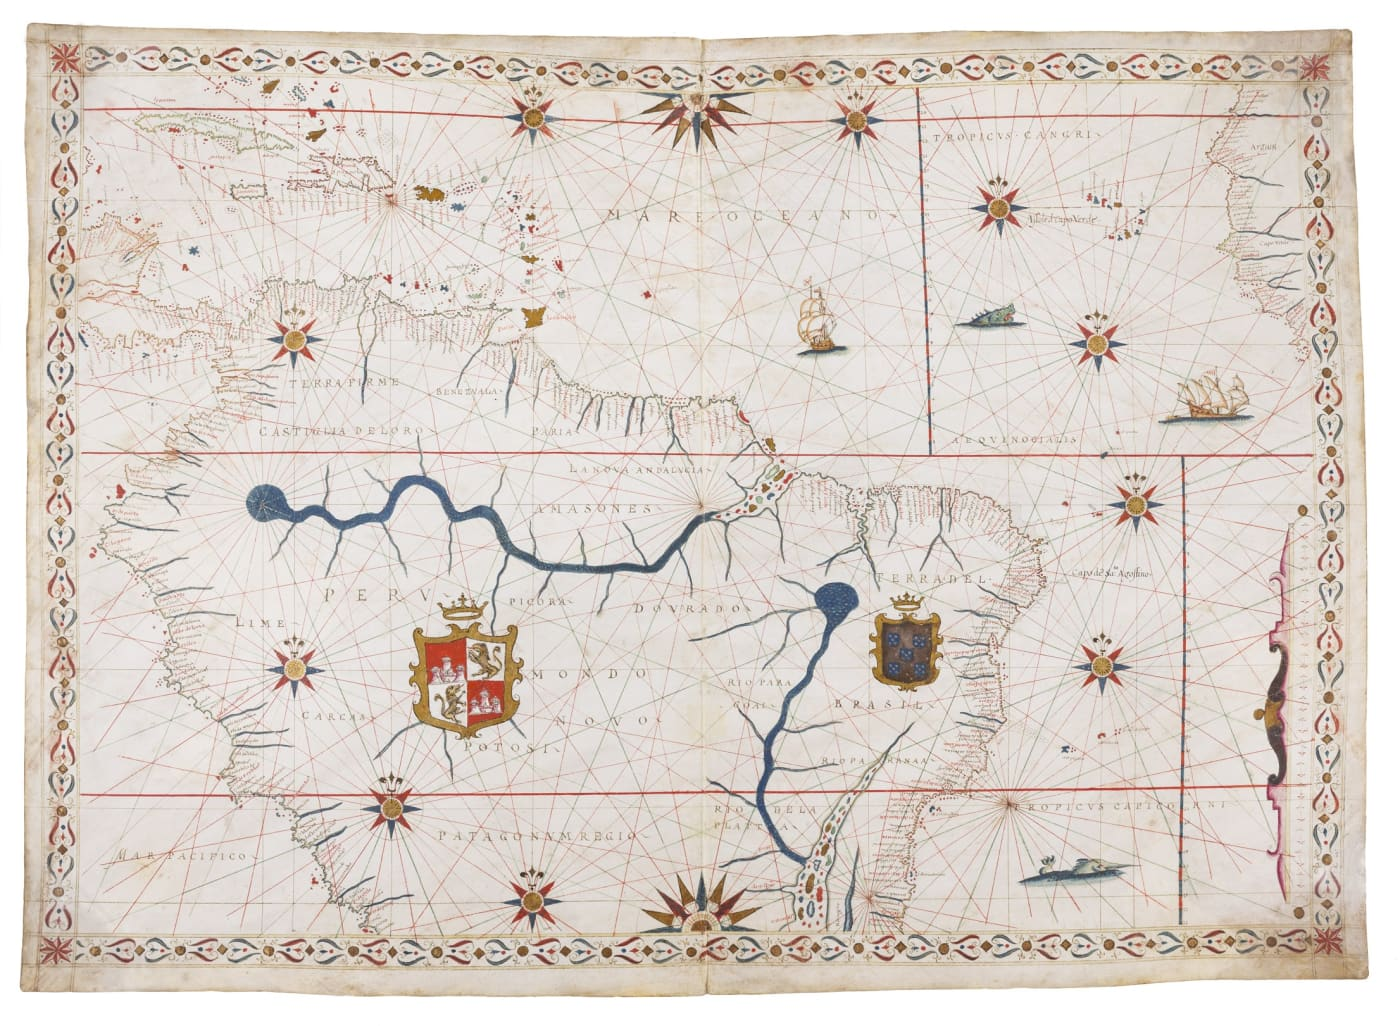 Magnificent portolan chart of northern part of South America